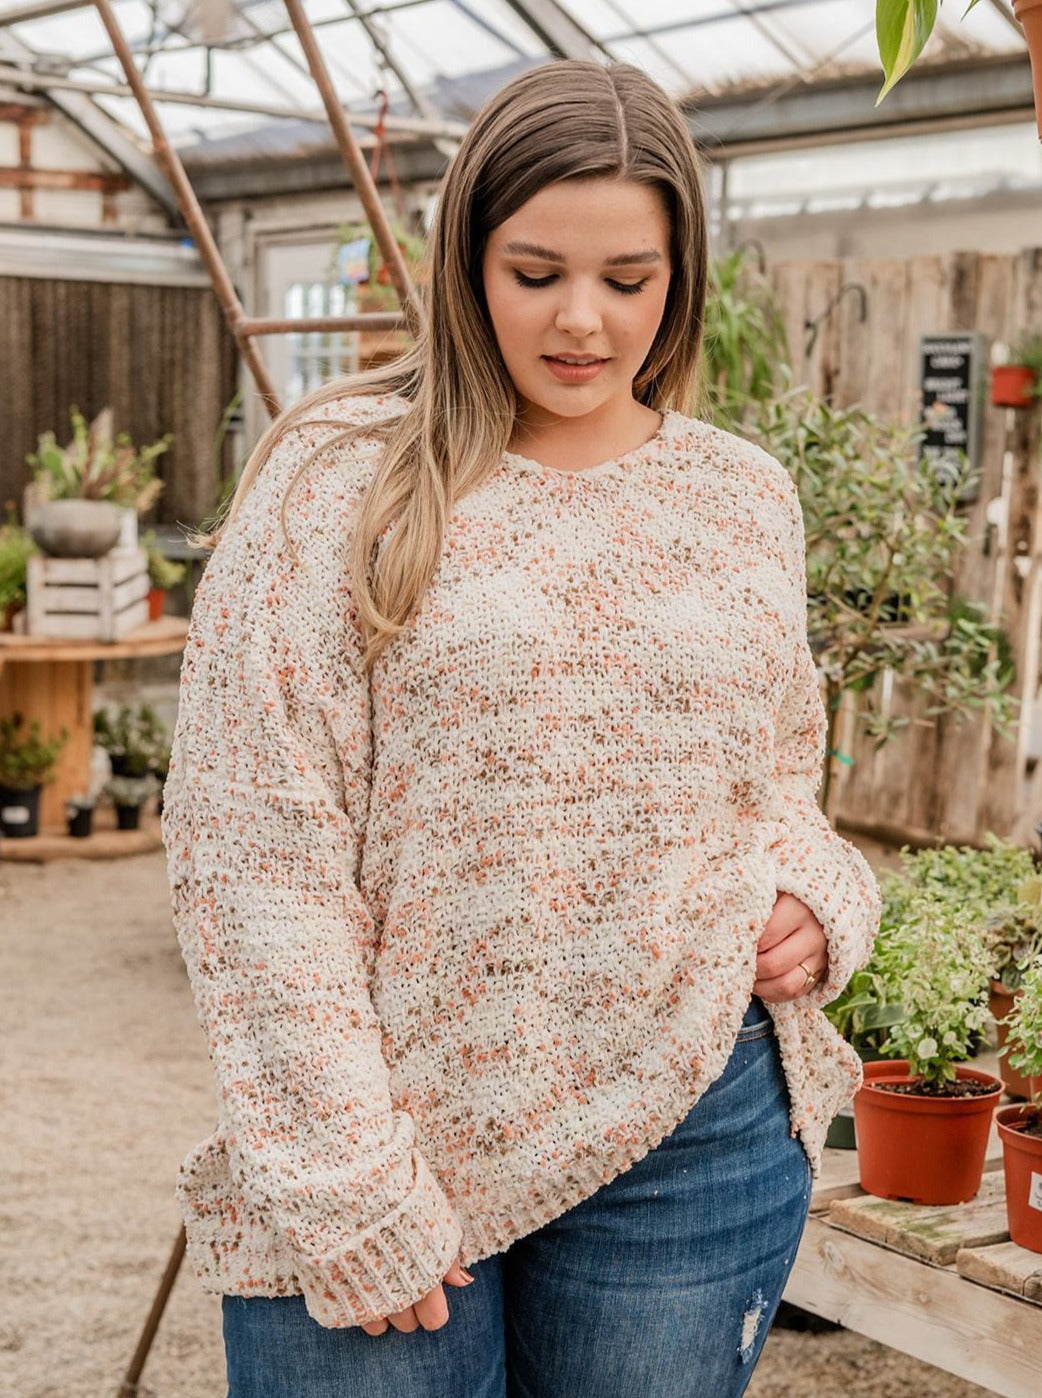 This sweater features a long sleeve speckled print knit sweater with a v-neck neckline.   Fabric: 100% Polyester Approx Measurements: Model Kendall: 5'6 size 16 wearing size 2X